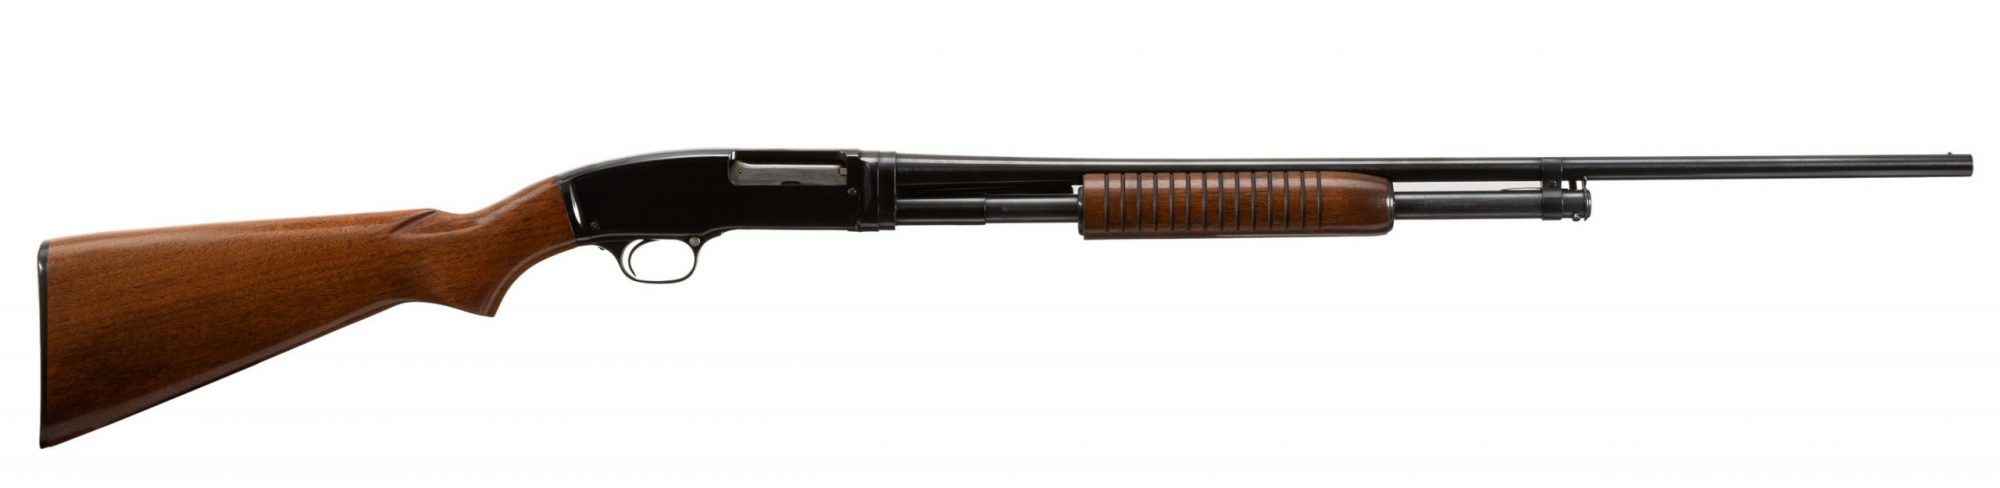 Photo of a pre-owned Winchester Model 42 Standard Grade, for sale by Turnbull Restoration of Bloomfield, NY